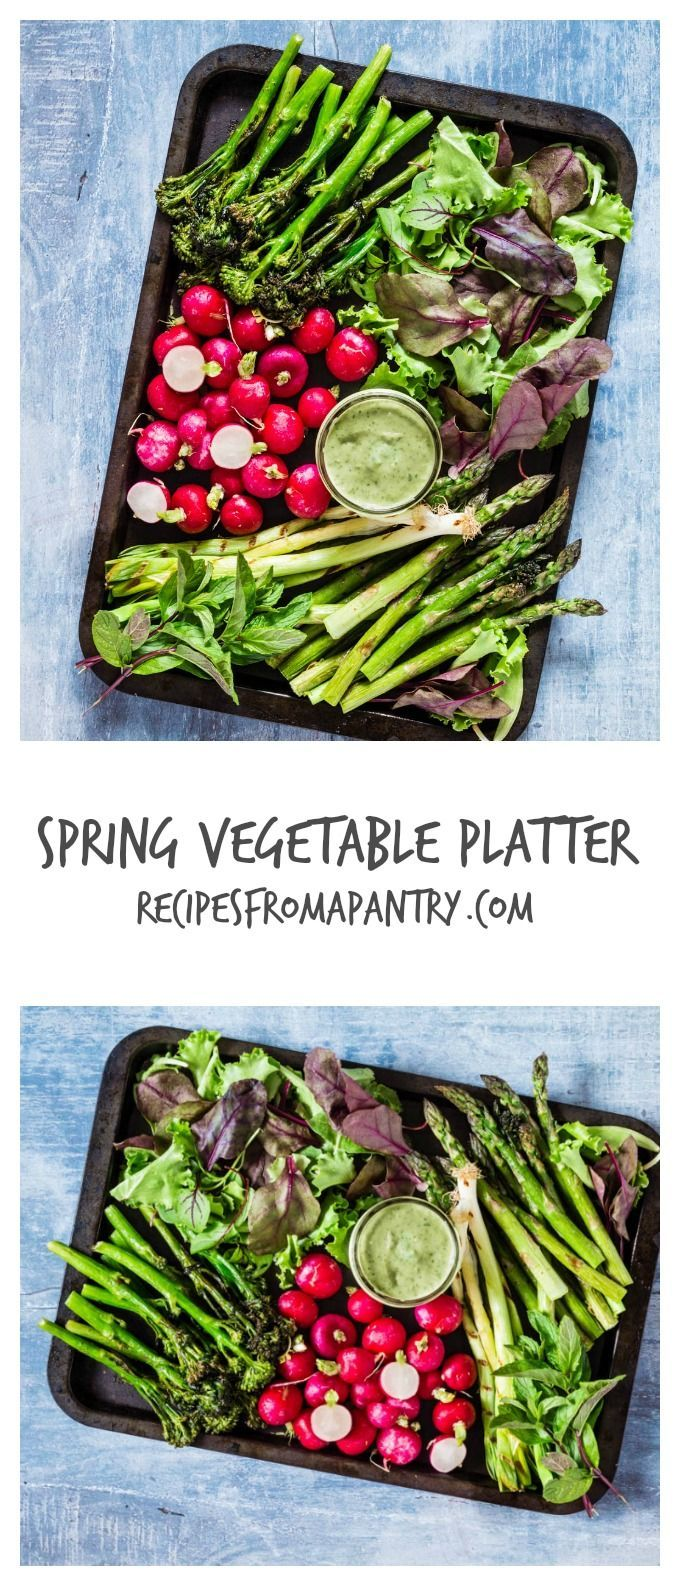 Spring Vegetable Platter And Avocado Green Goddess Dip - asparagus, broccoli, radishes, sorrel and mint - recipesfromapantry.com